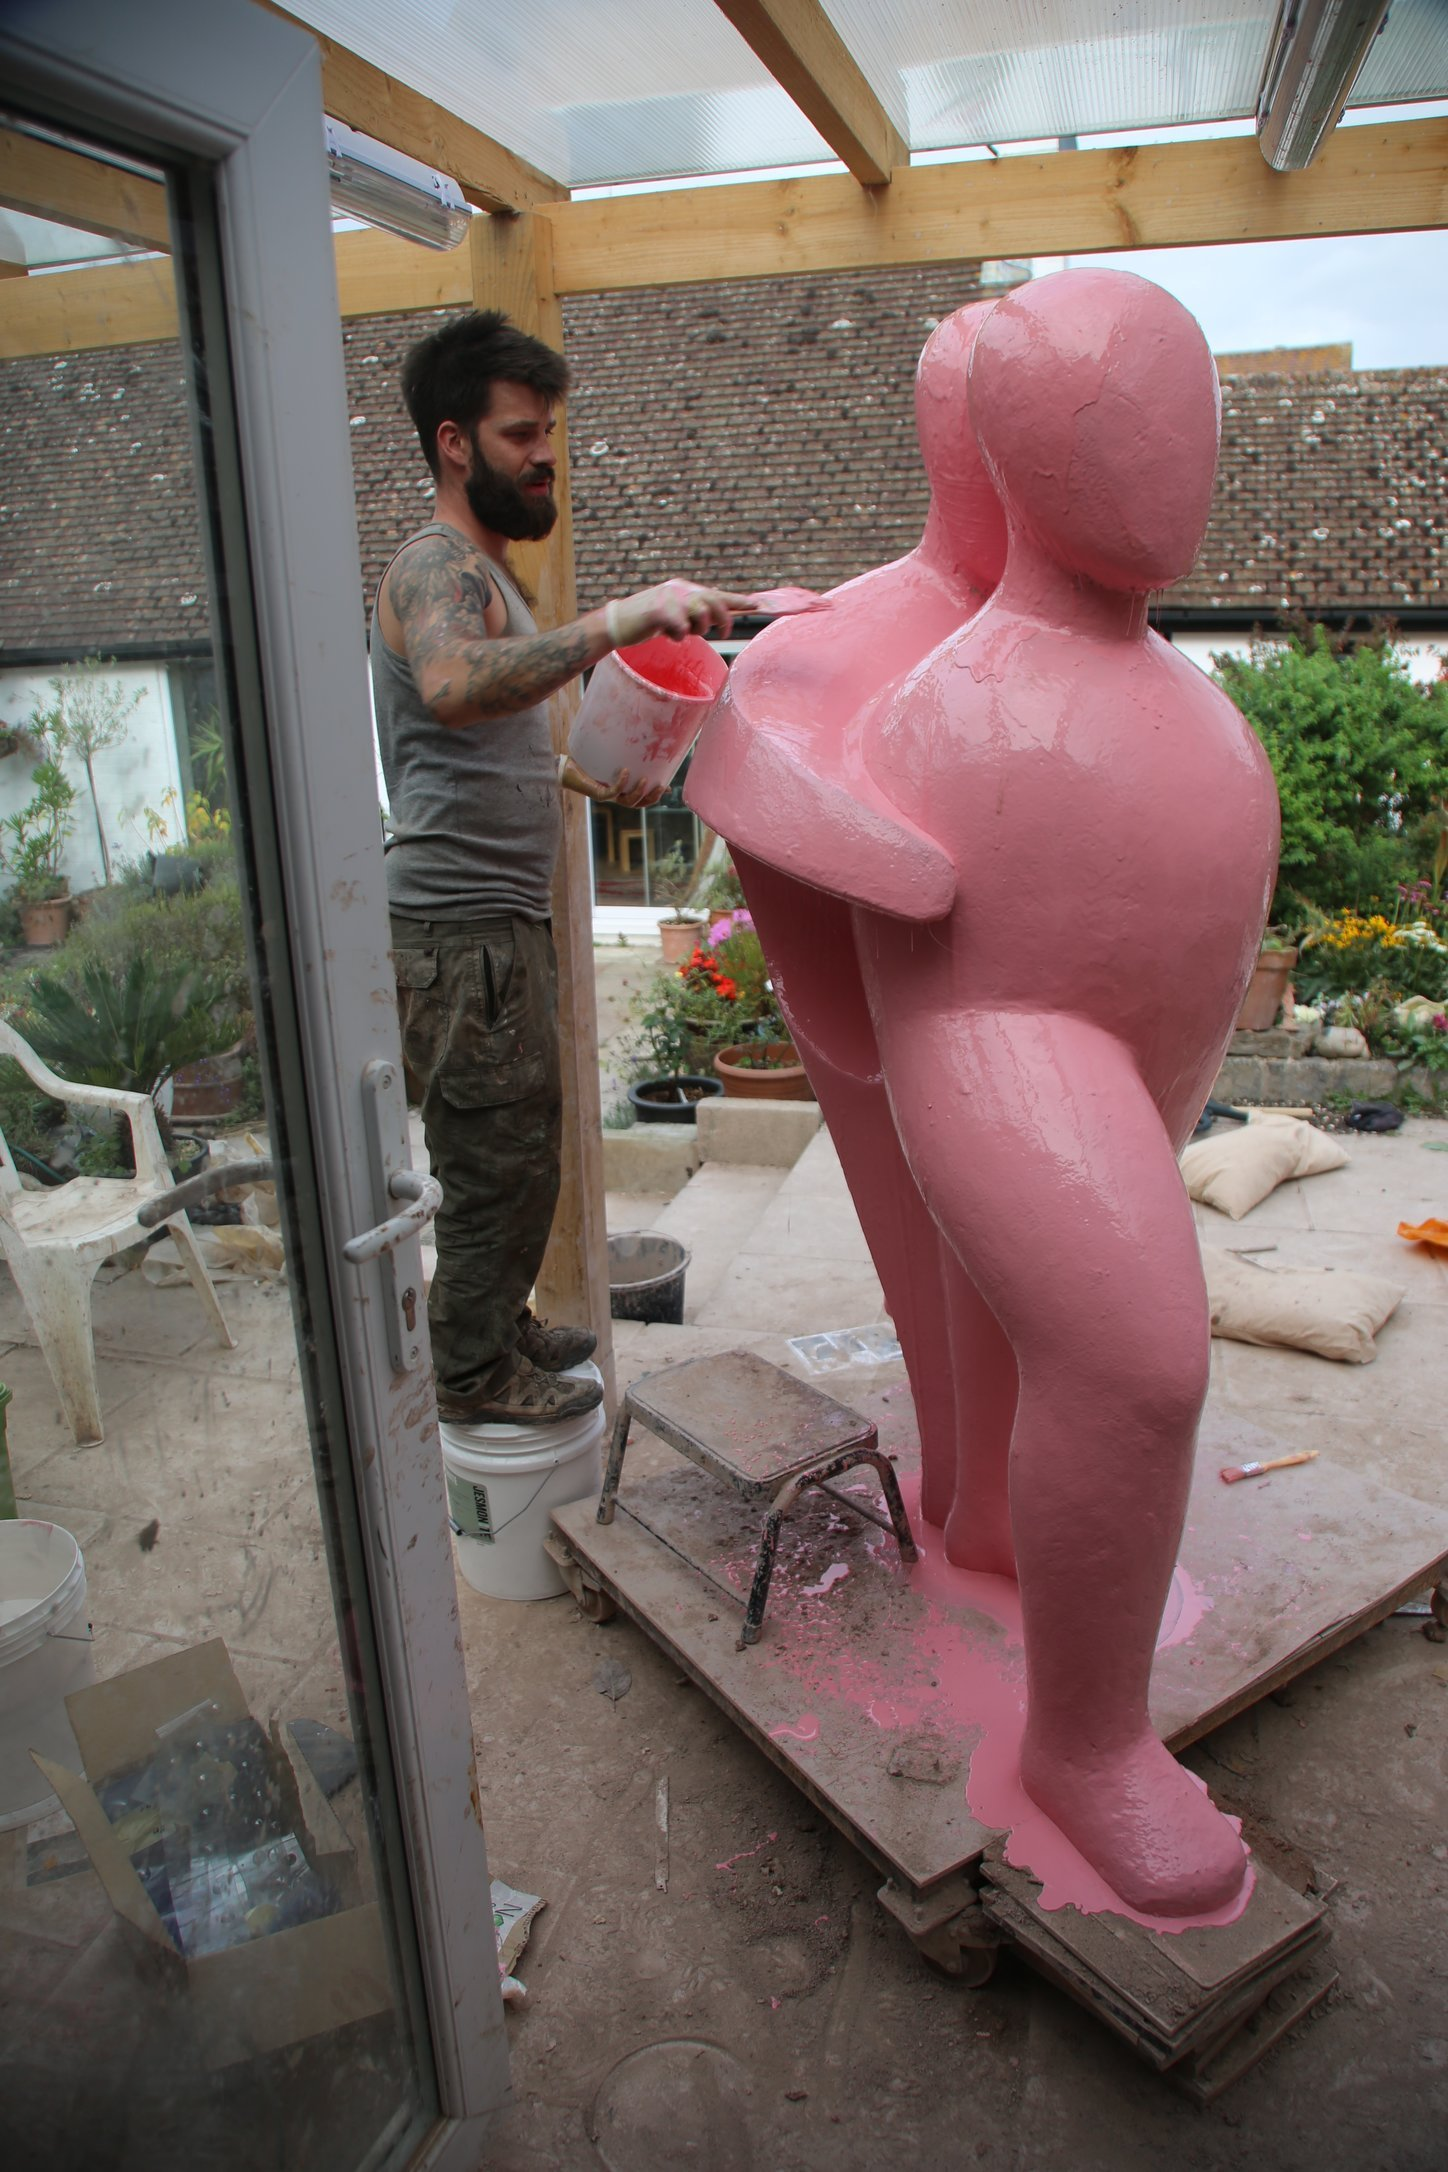 1. Pouring and brushing on the GEL RUBBER COAT